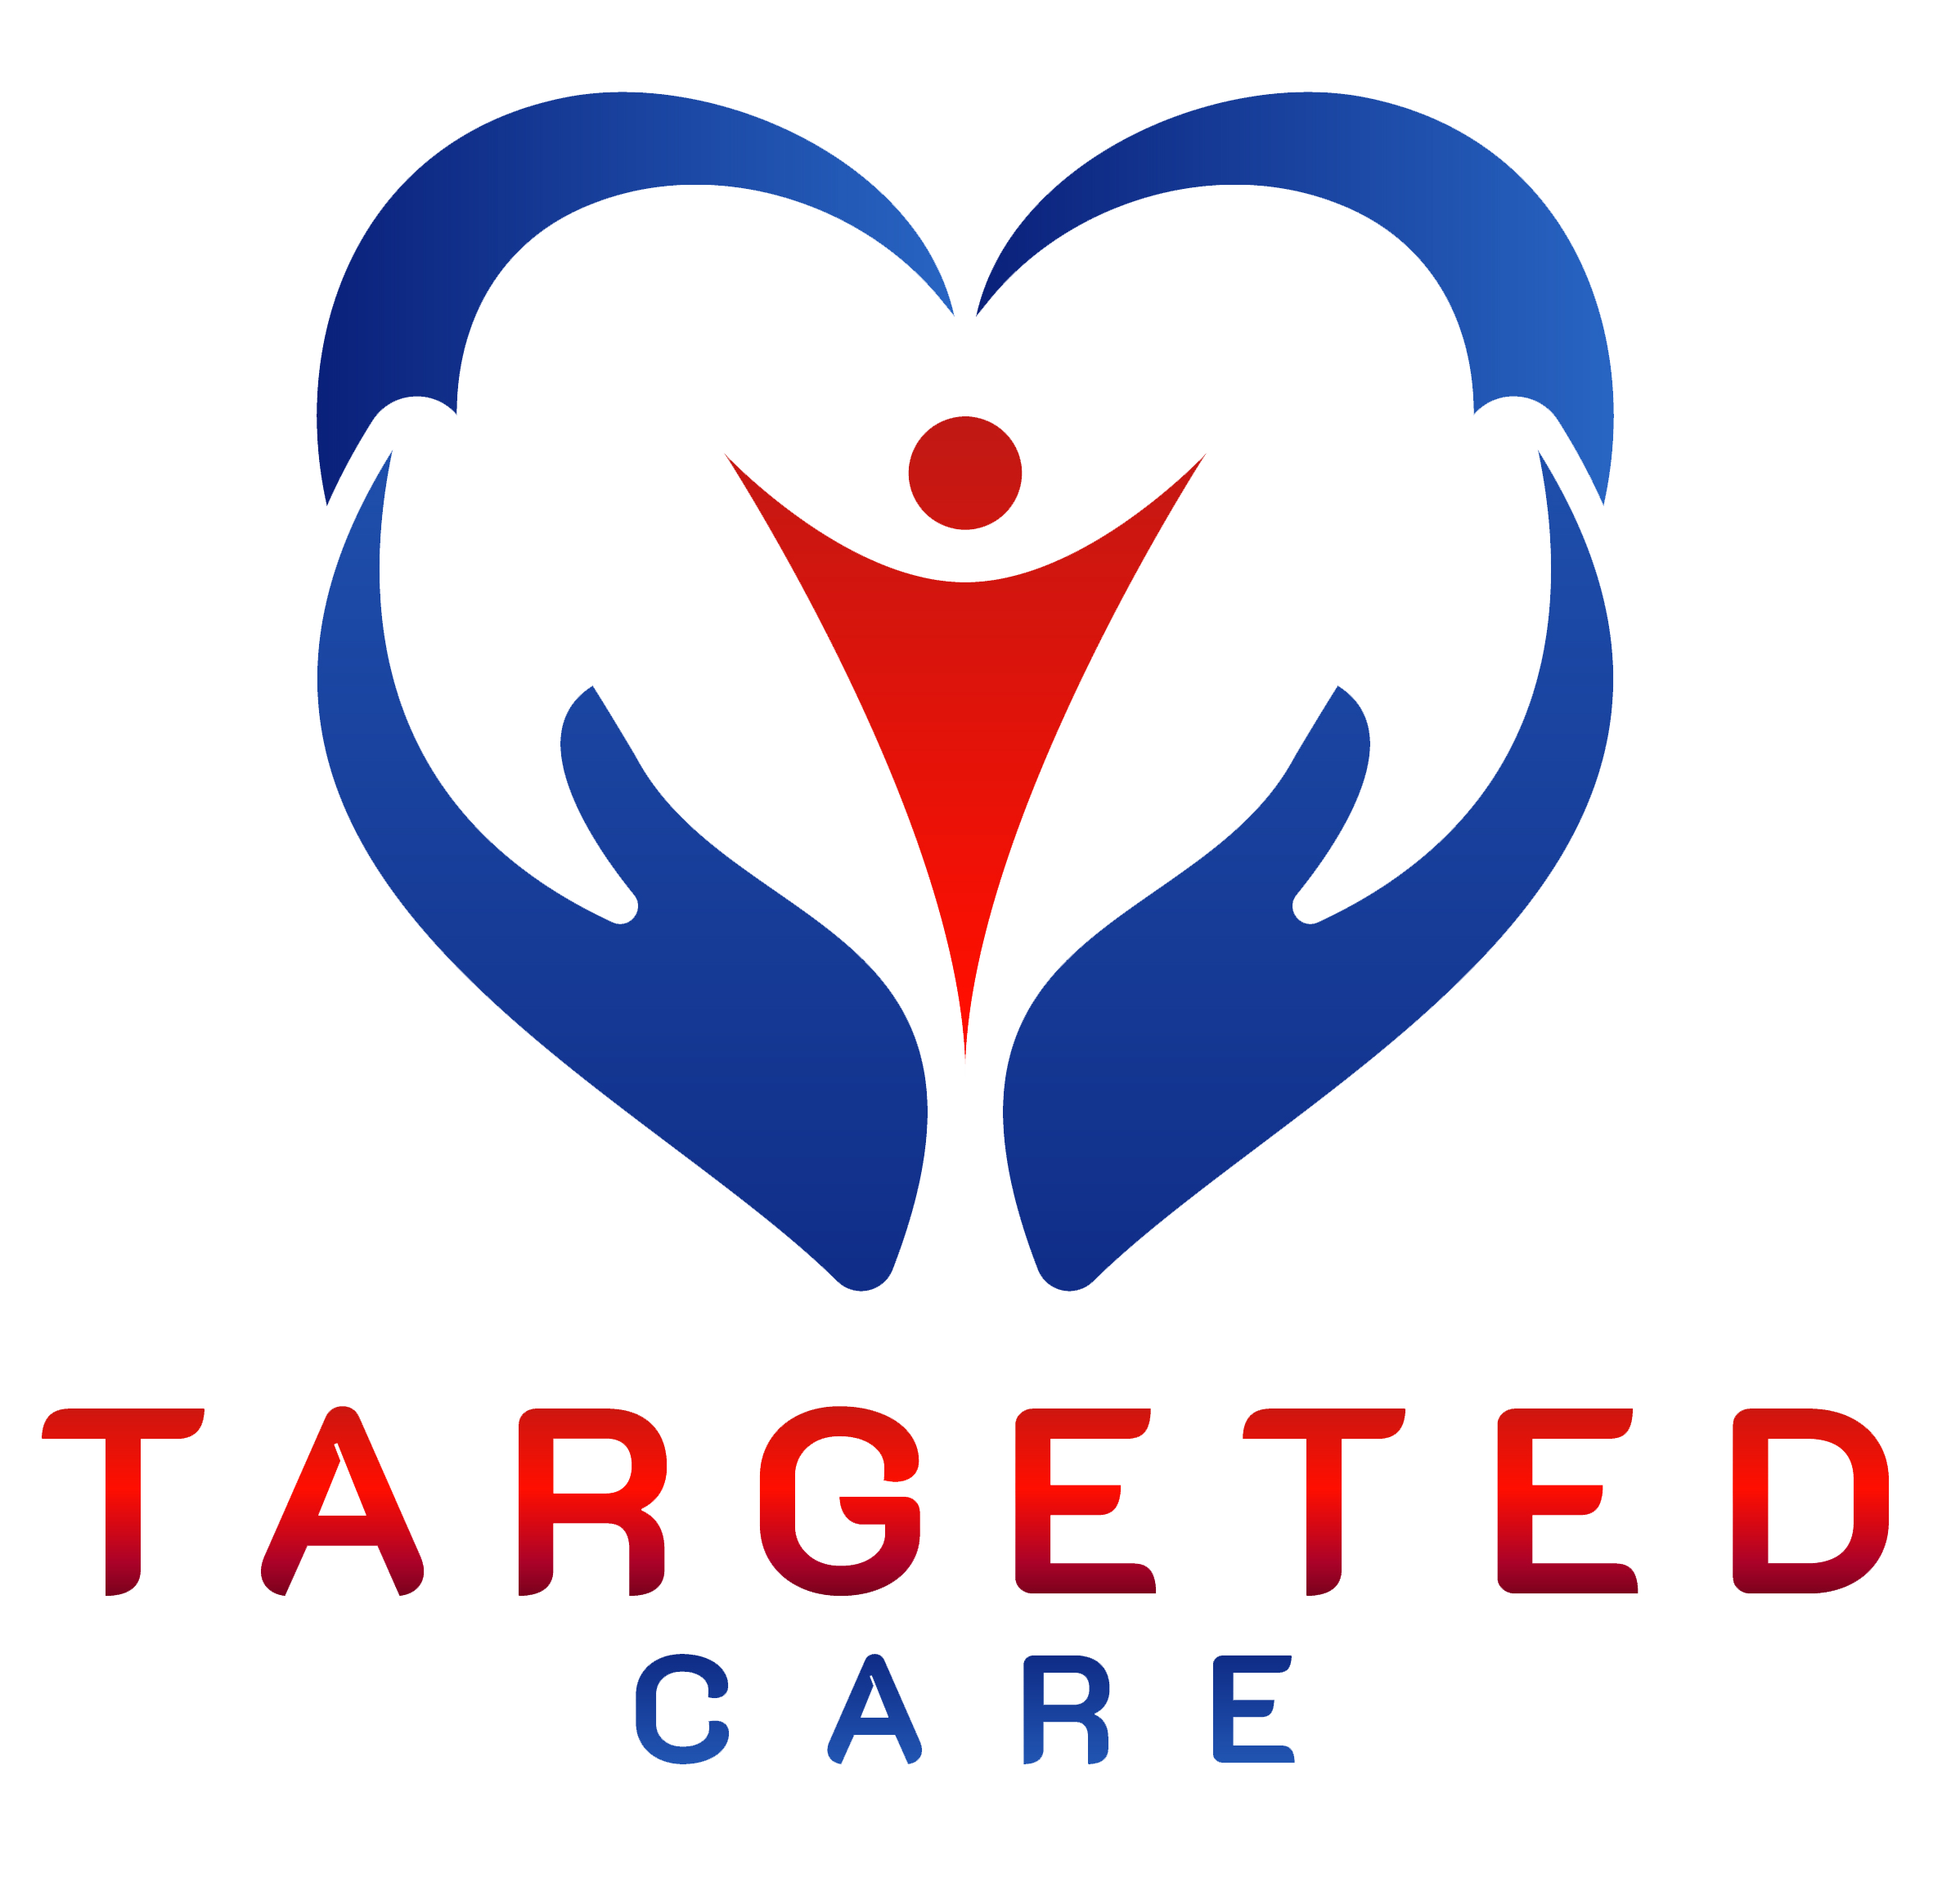 Targeted Care